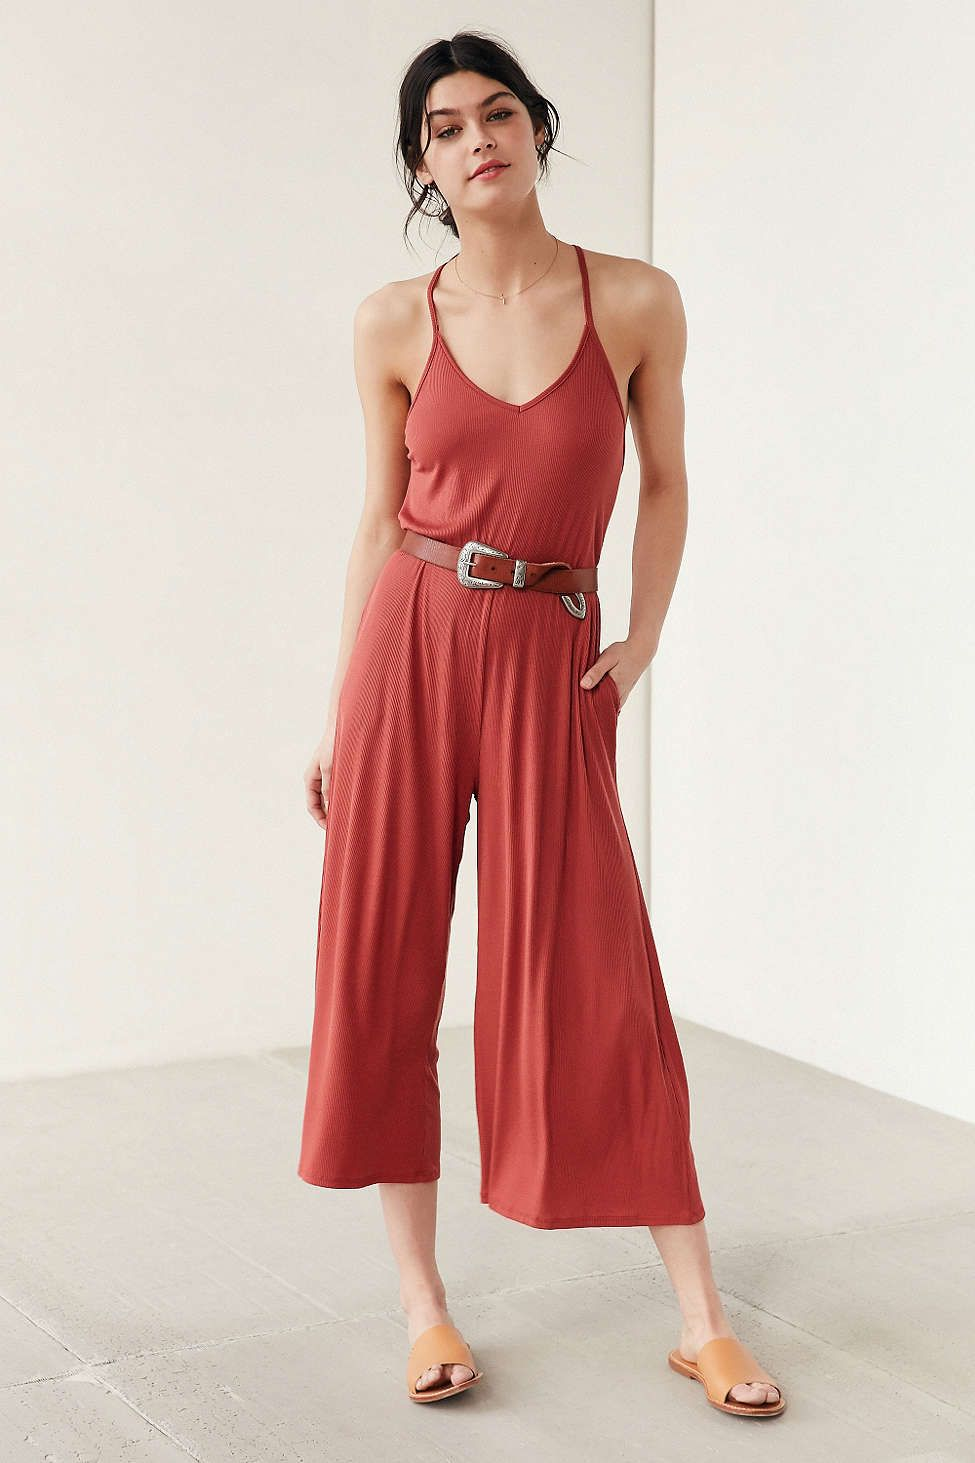 fc60b3752caf5 Silence + Noise Ribbed Knit Culotte Jumpsuit - Urban Outfitters ...